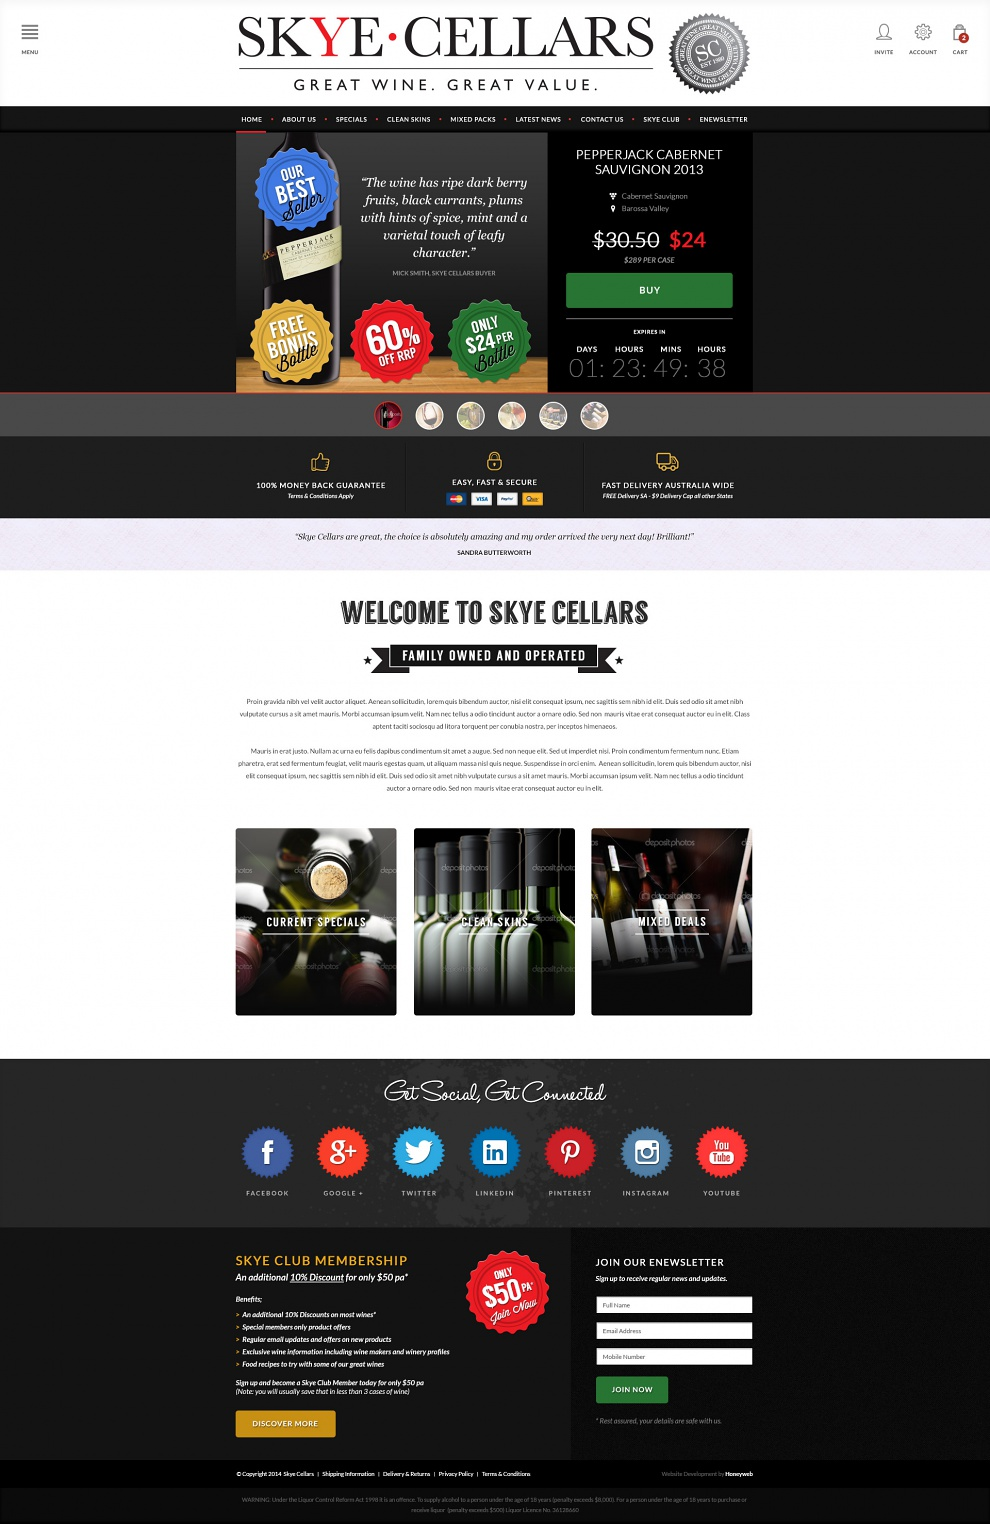 Skye Cellars - Website Design